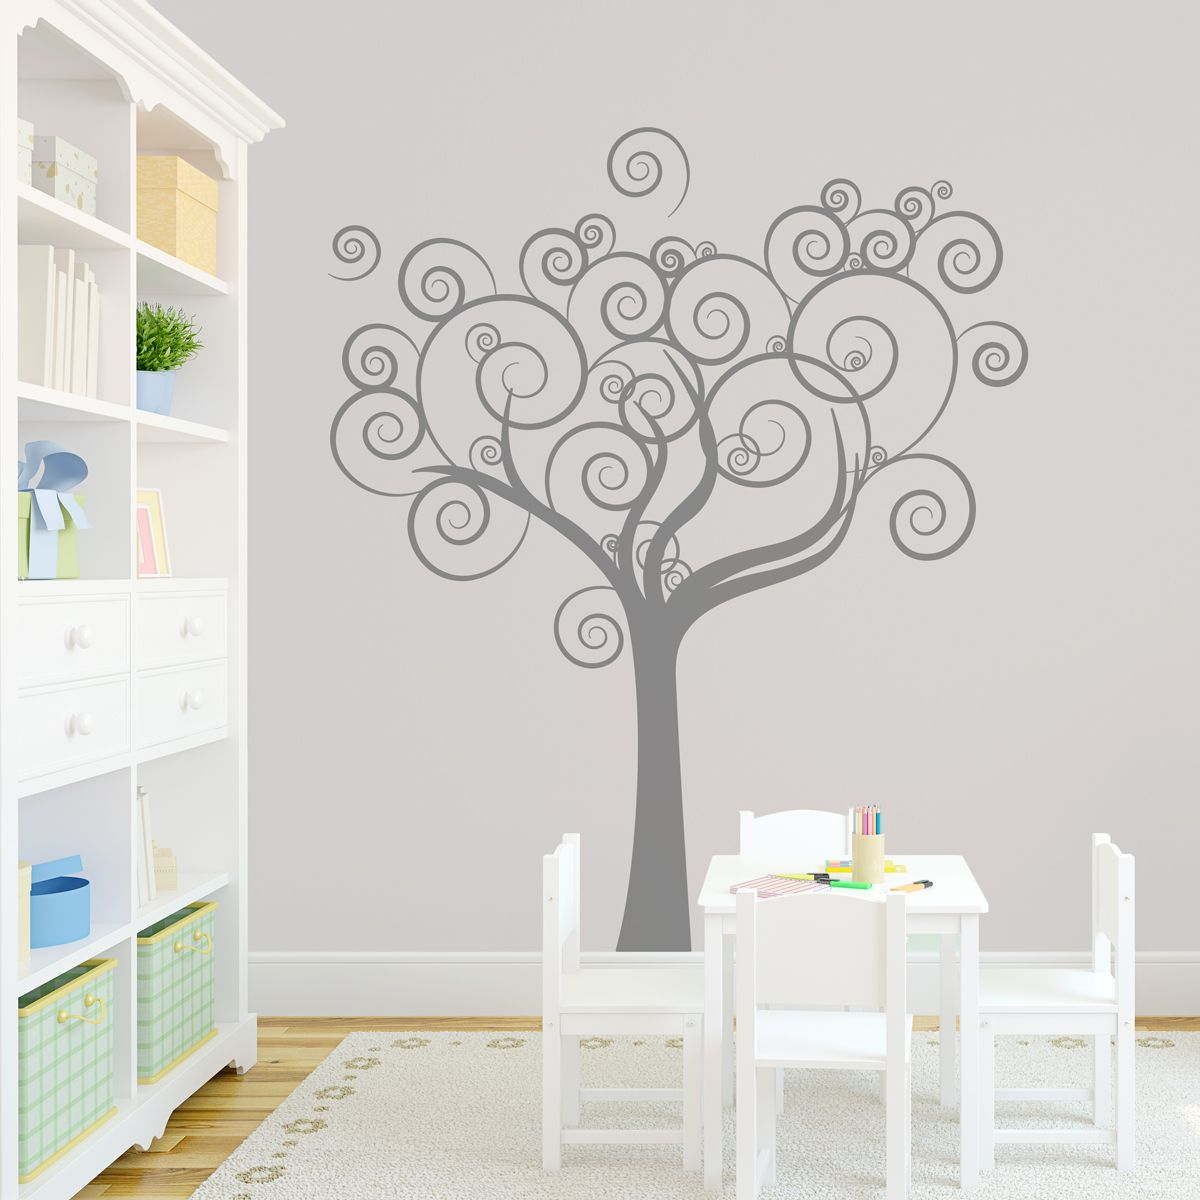 vinyl family tree wall decals | Whimsical Love Tree Wall Decal ...